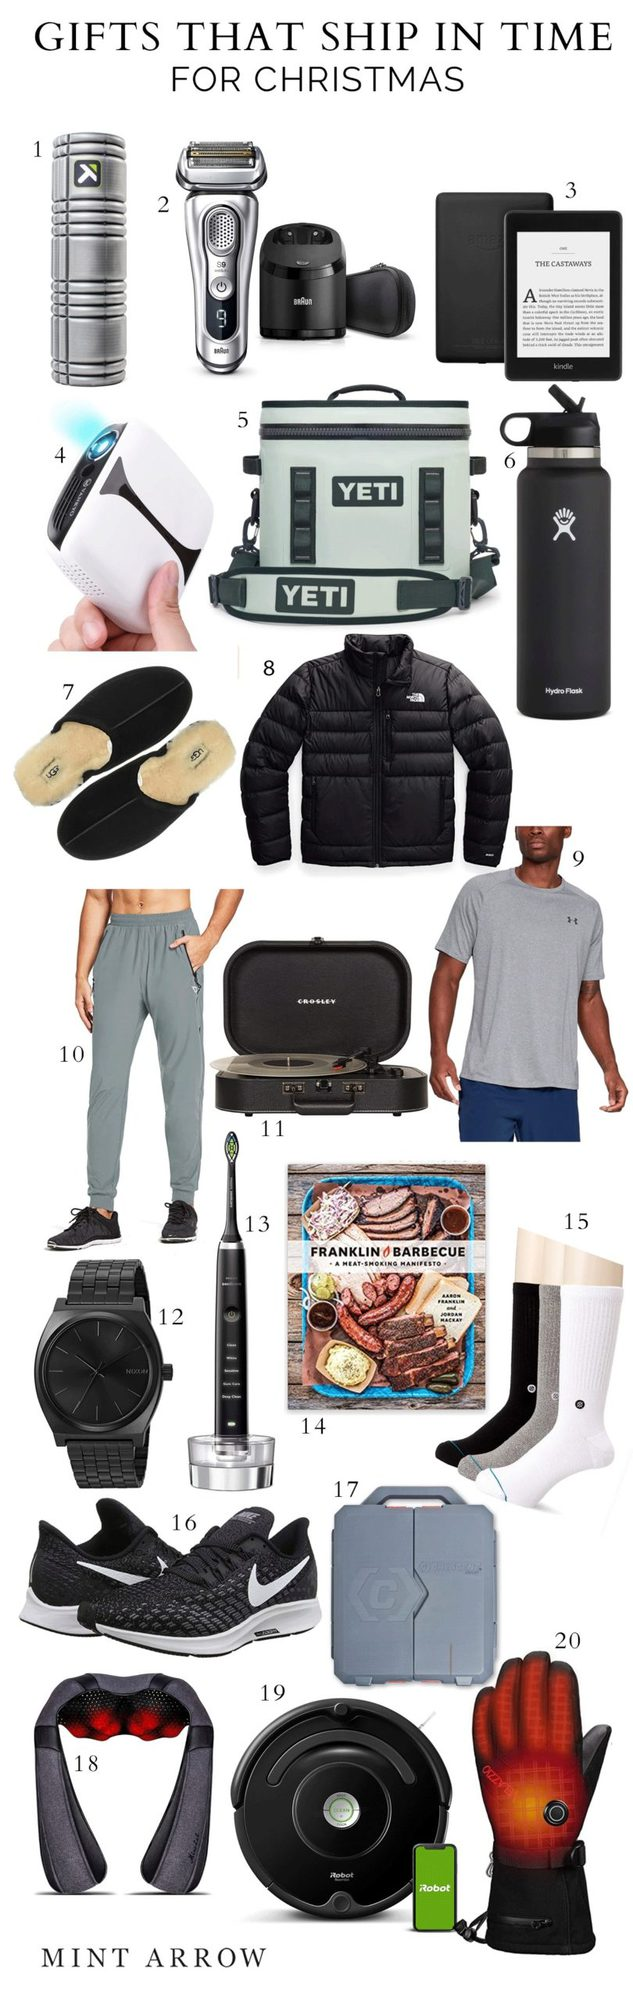 mens gift ideas that ship in time for christmas